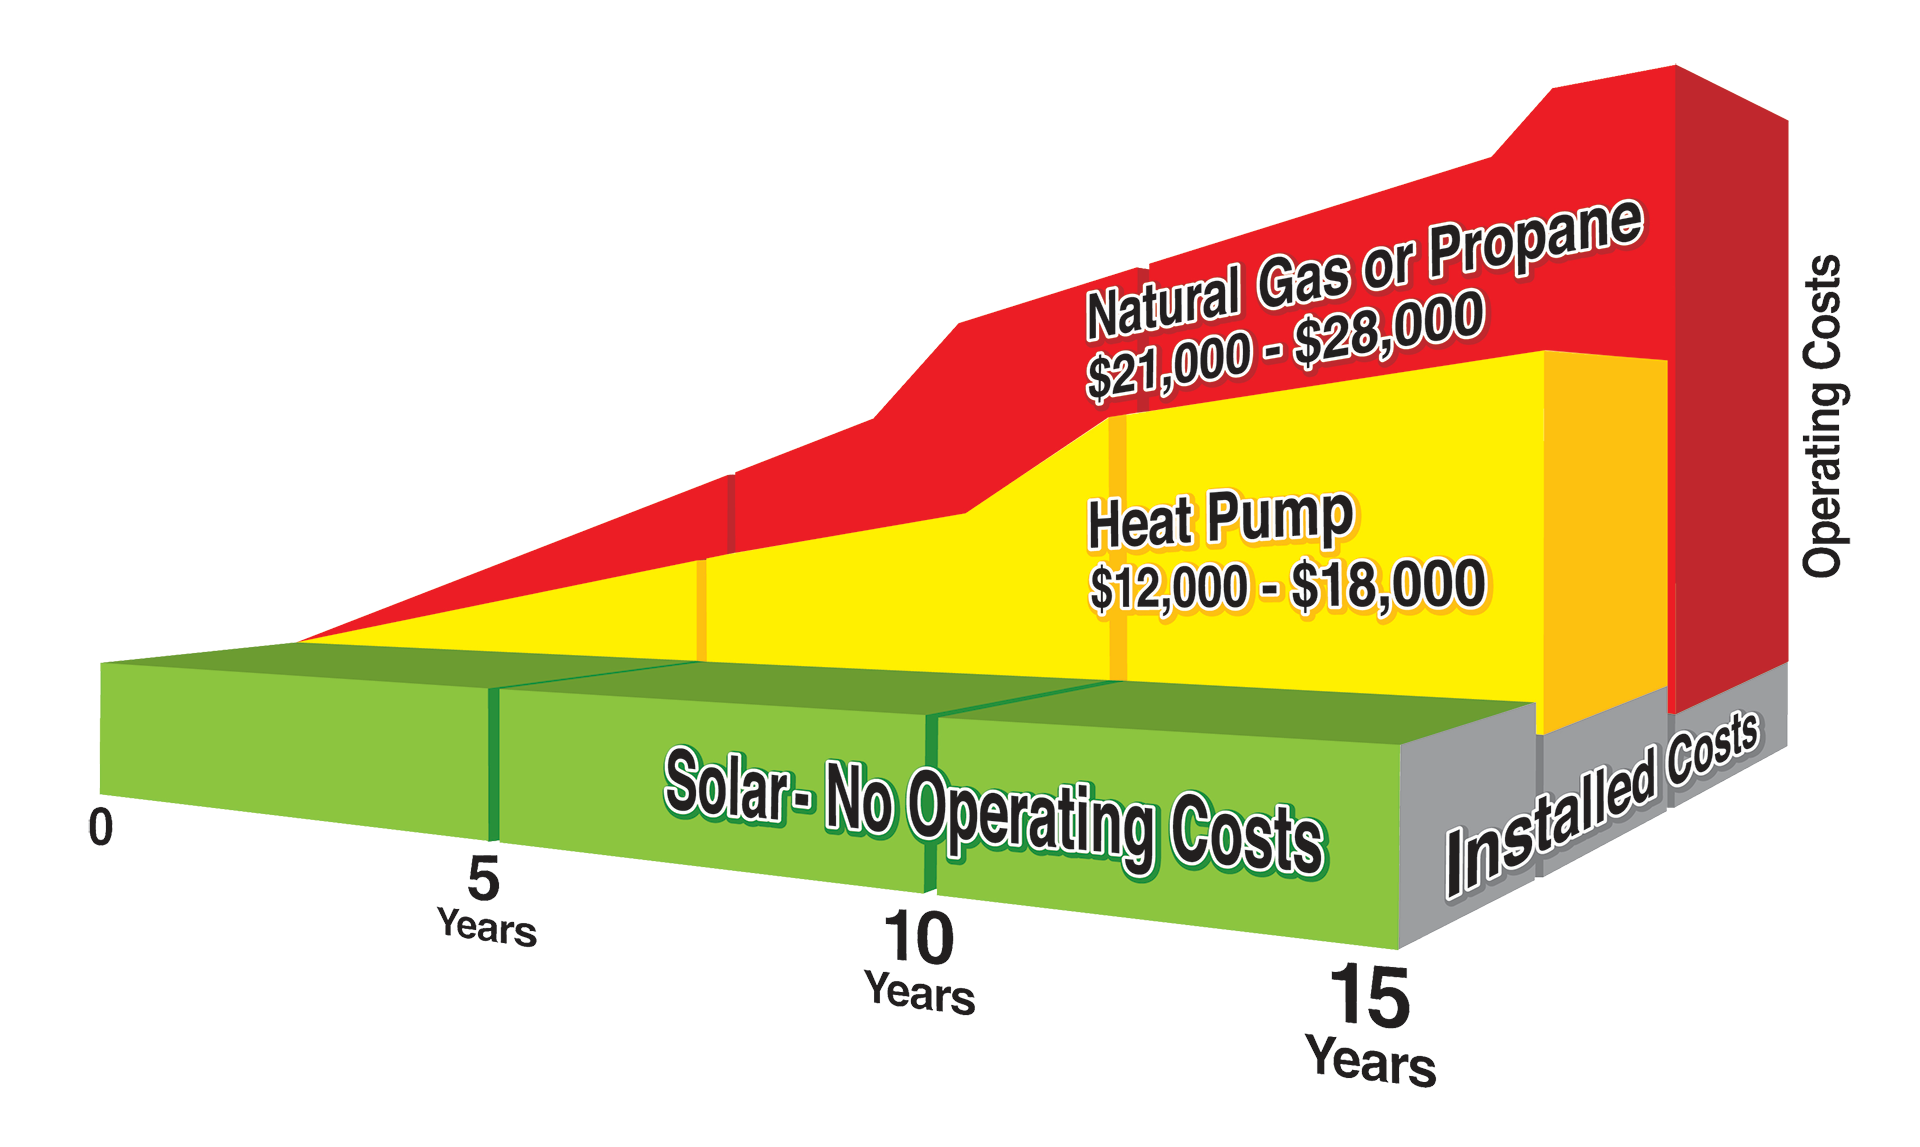 Cost of Solar Pool Heater vs. Traditional Pool Heater